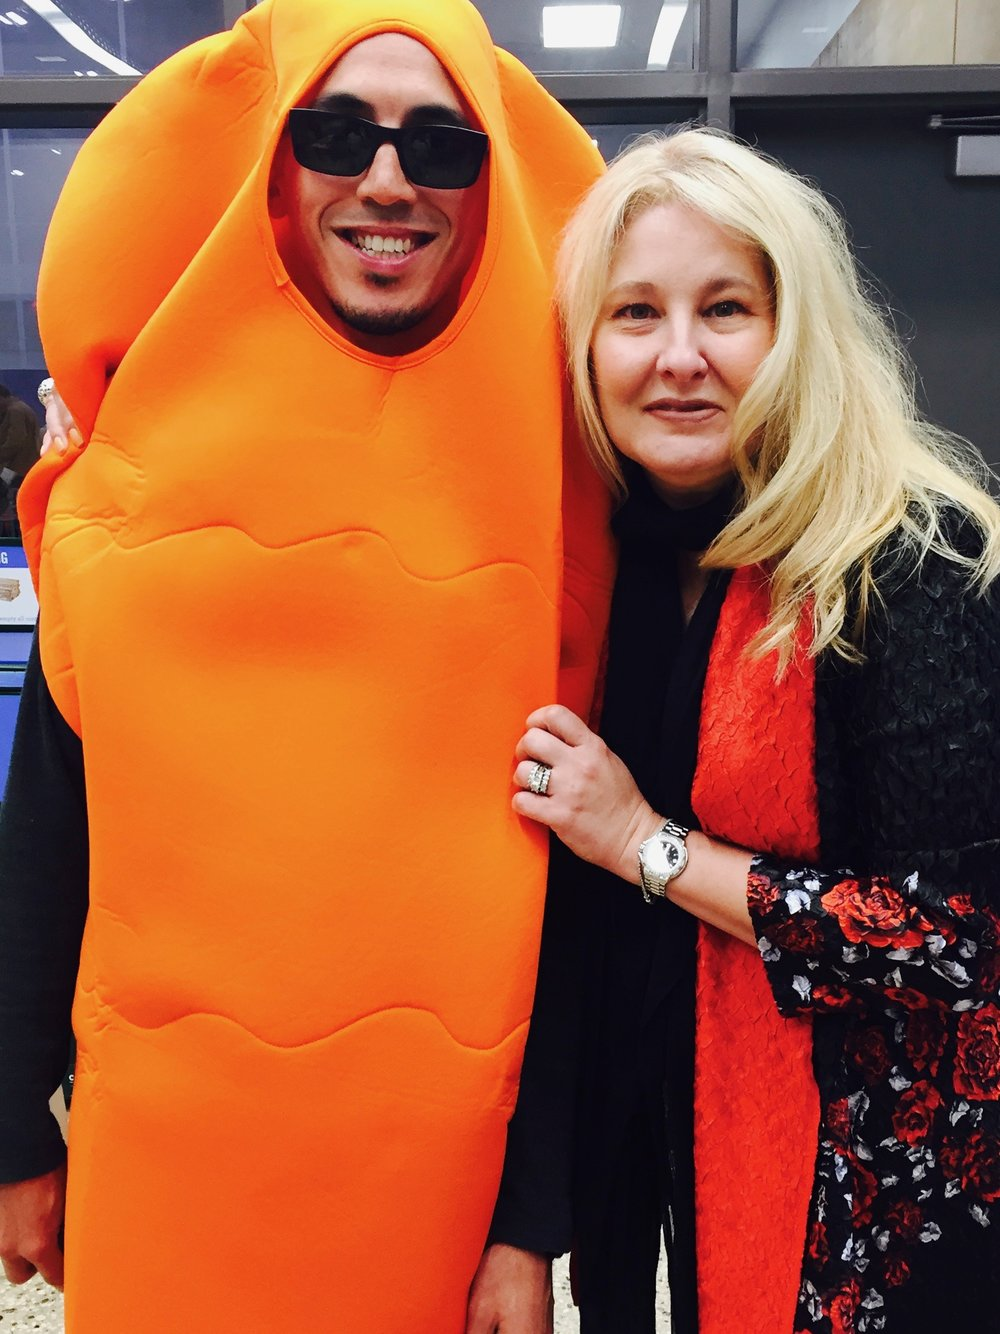 Me and a carrot